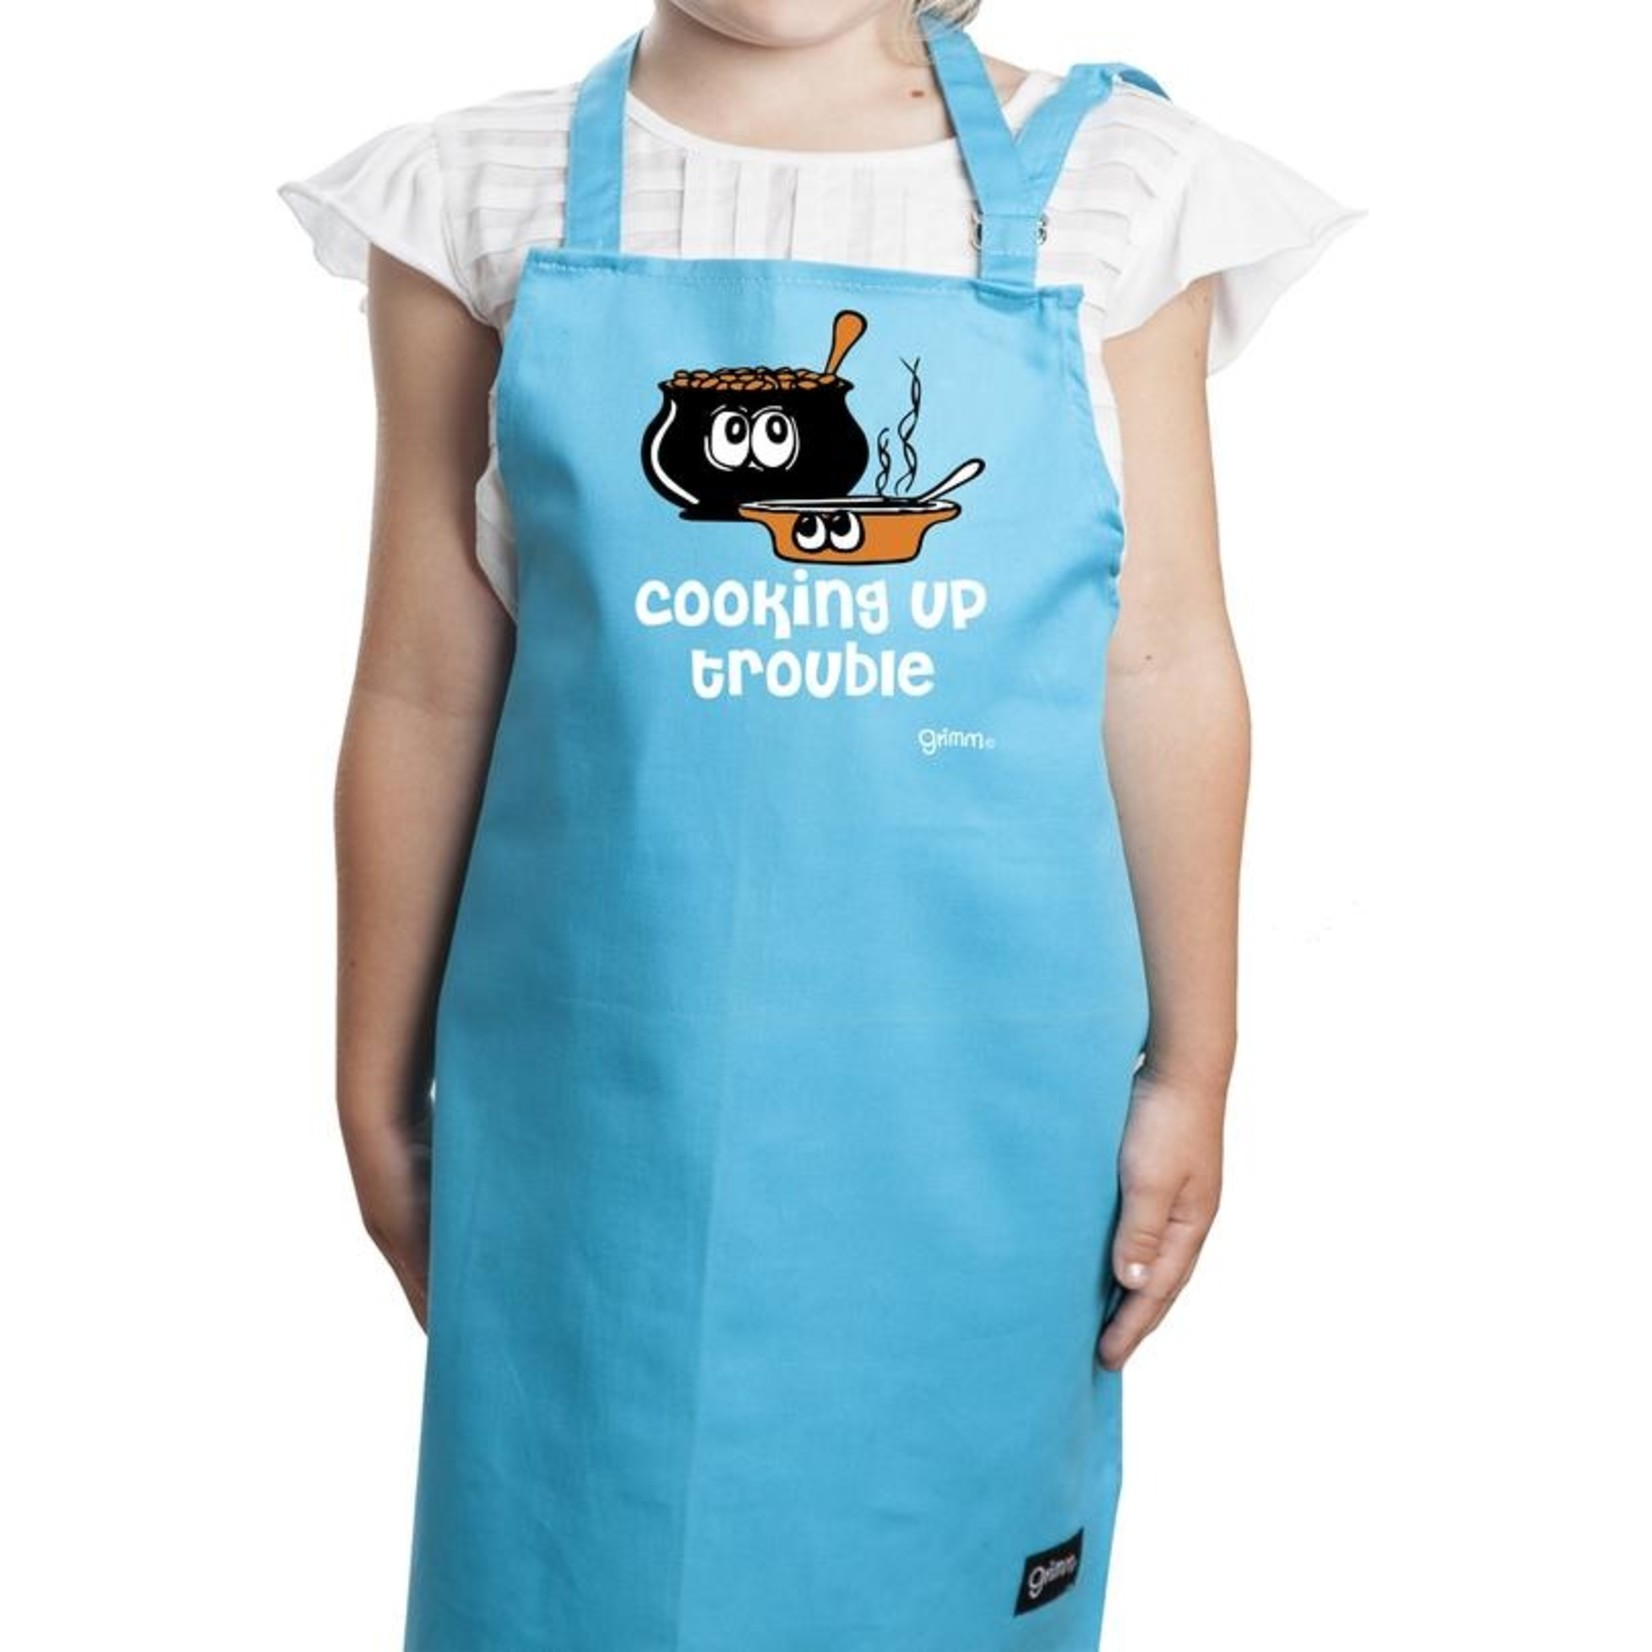 Children's Apron - Cooking Up Trouble